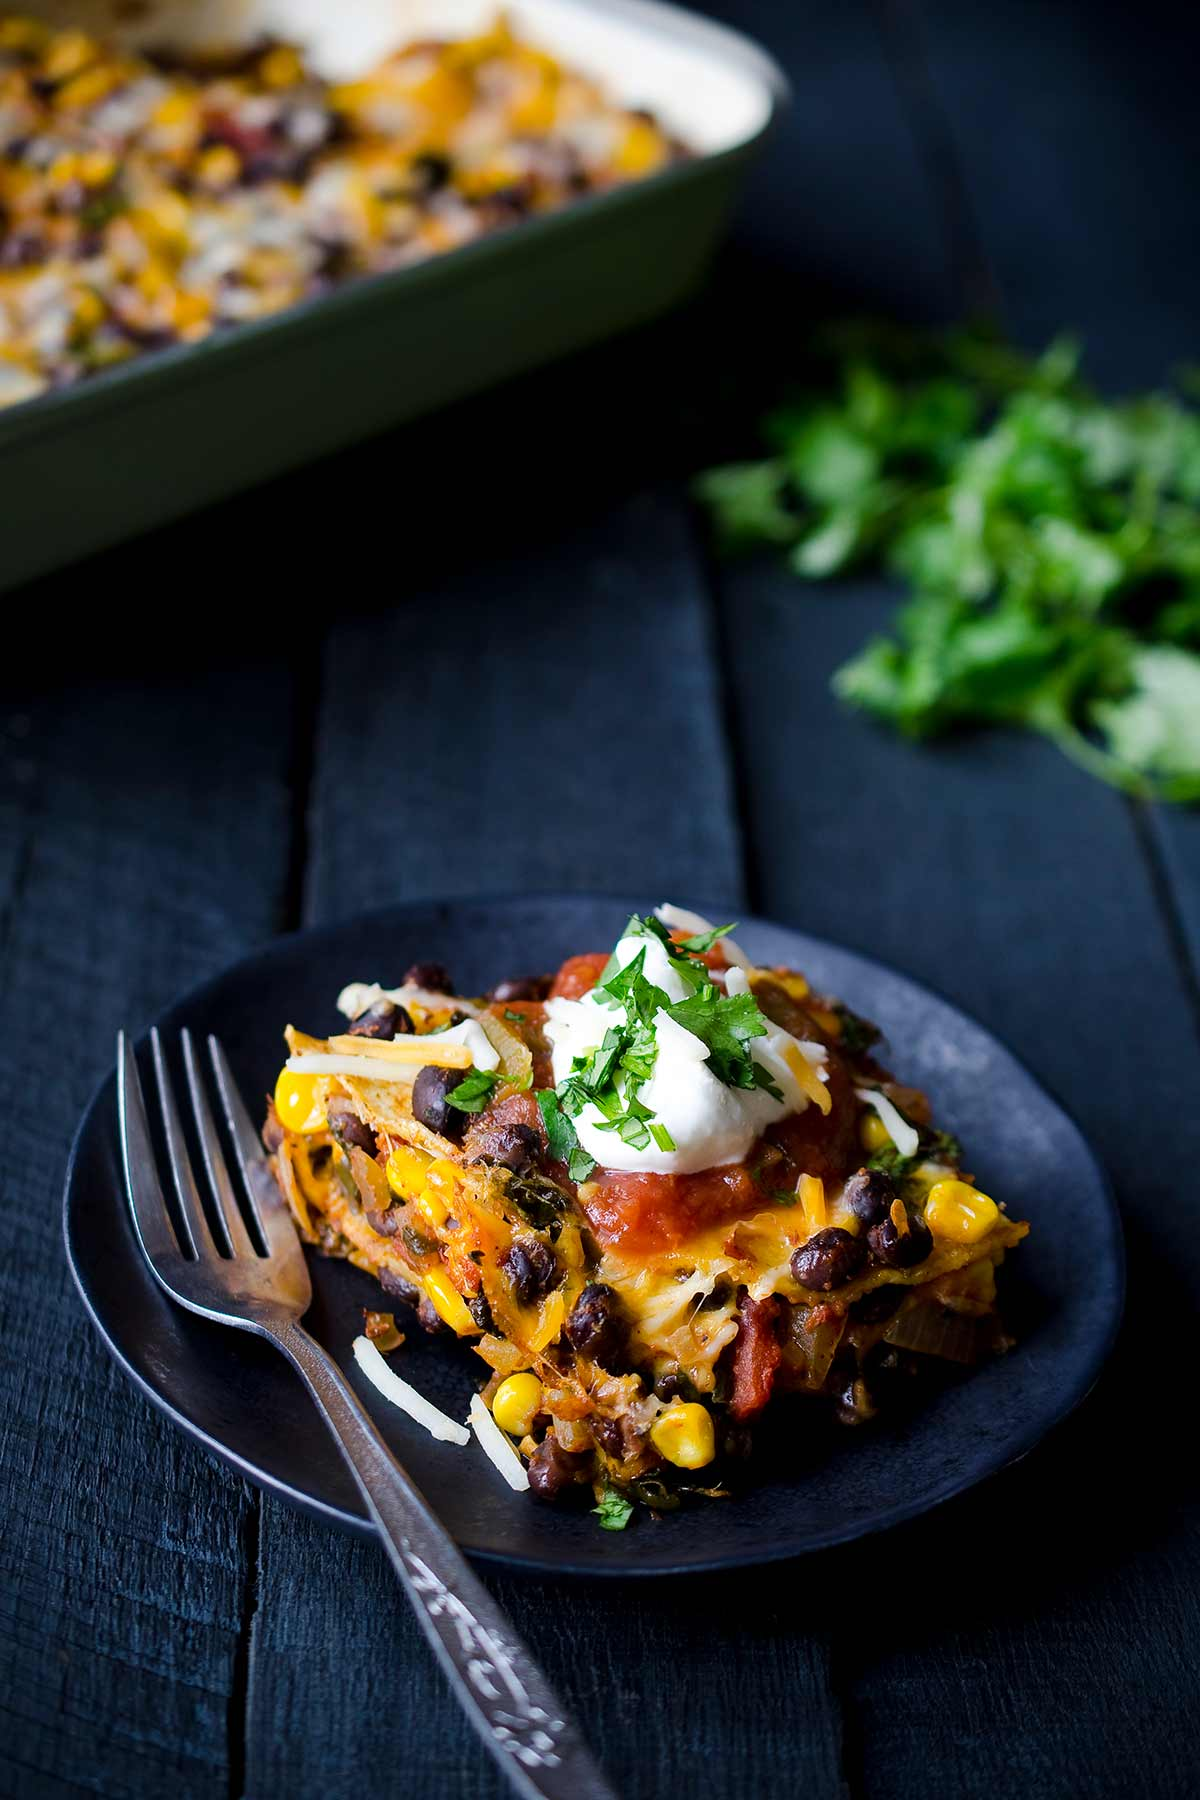 A slice of Mexican tortilla casserole on a plate, topped with sour cream and cilantro.